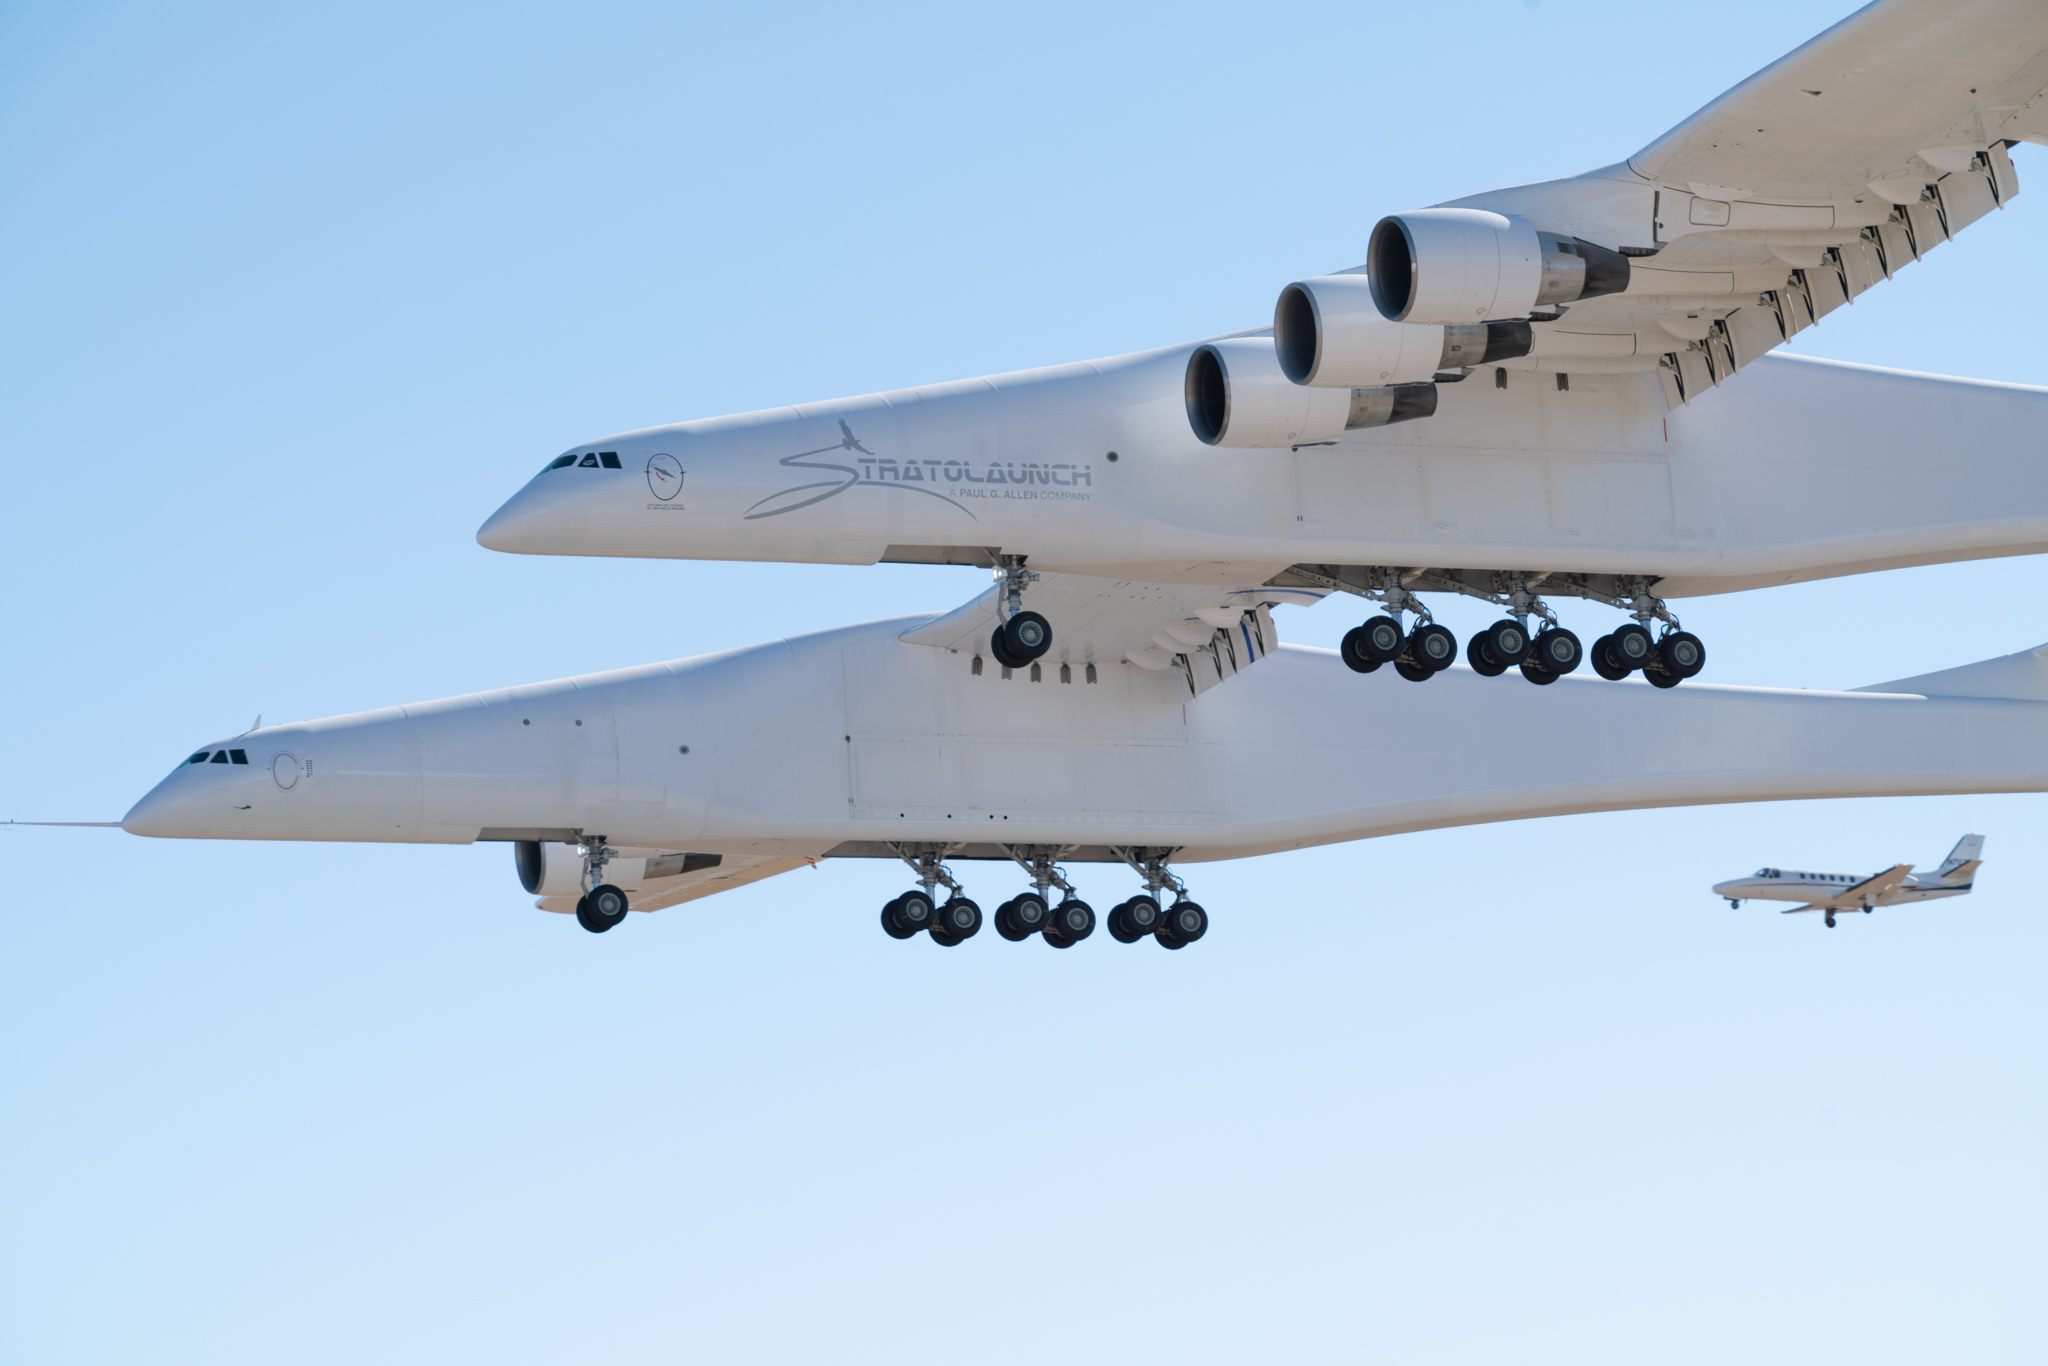 https://s3-us-west-2.amazonaws.com/stratowp-prod/wp-content/uploads/2019/04/13185319/Stratolaunch_FF-2238.jpg